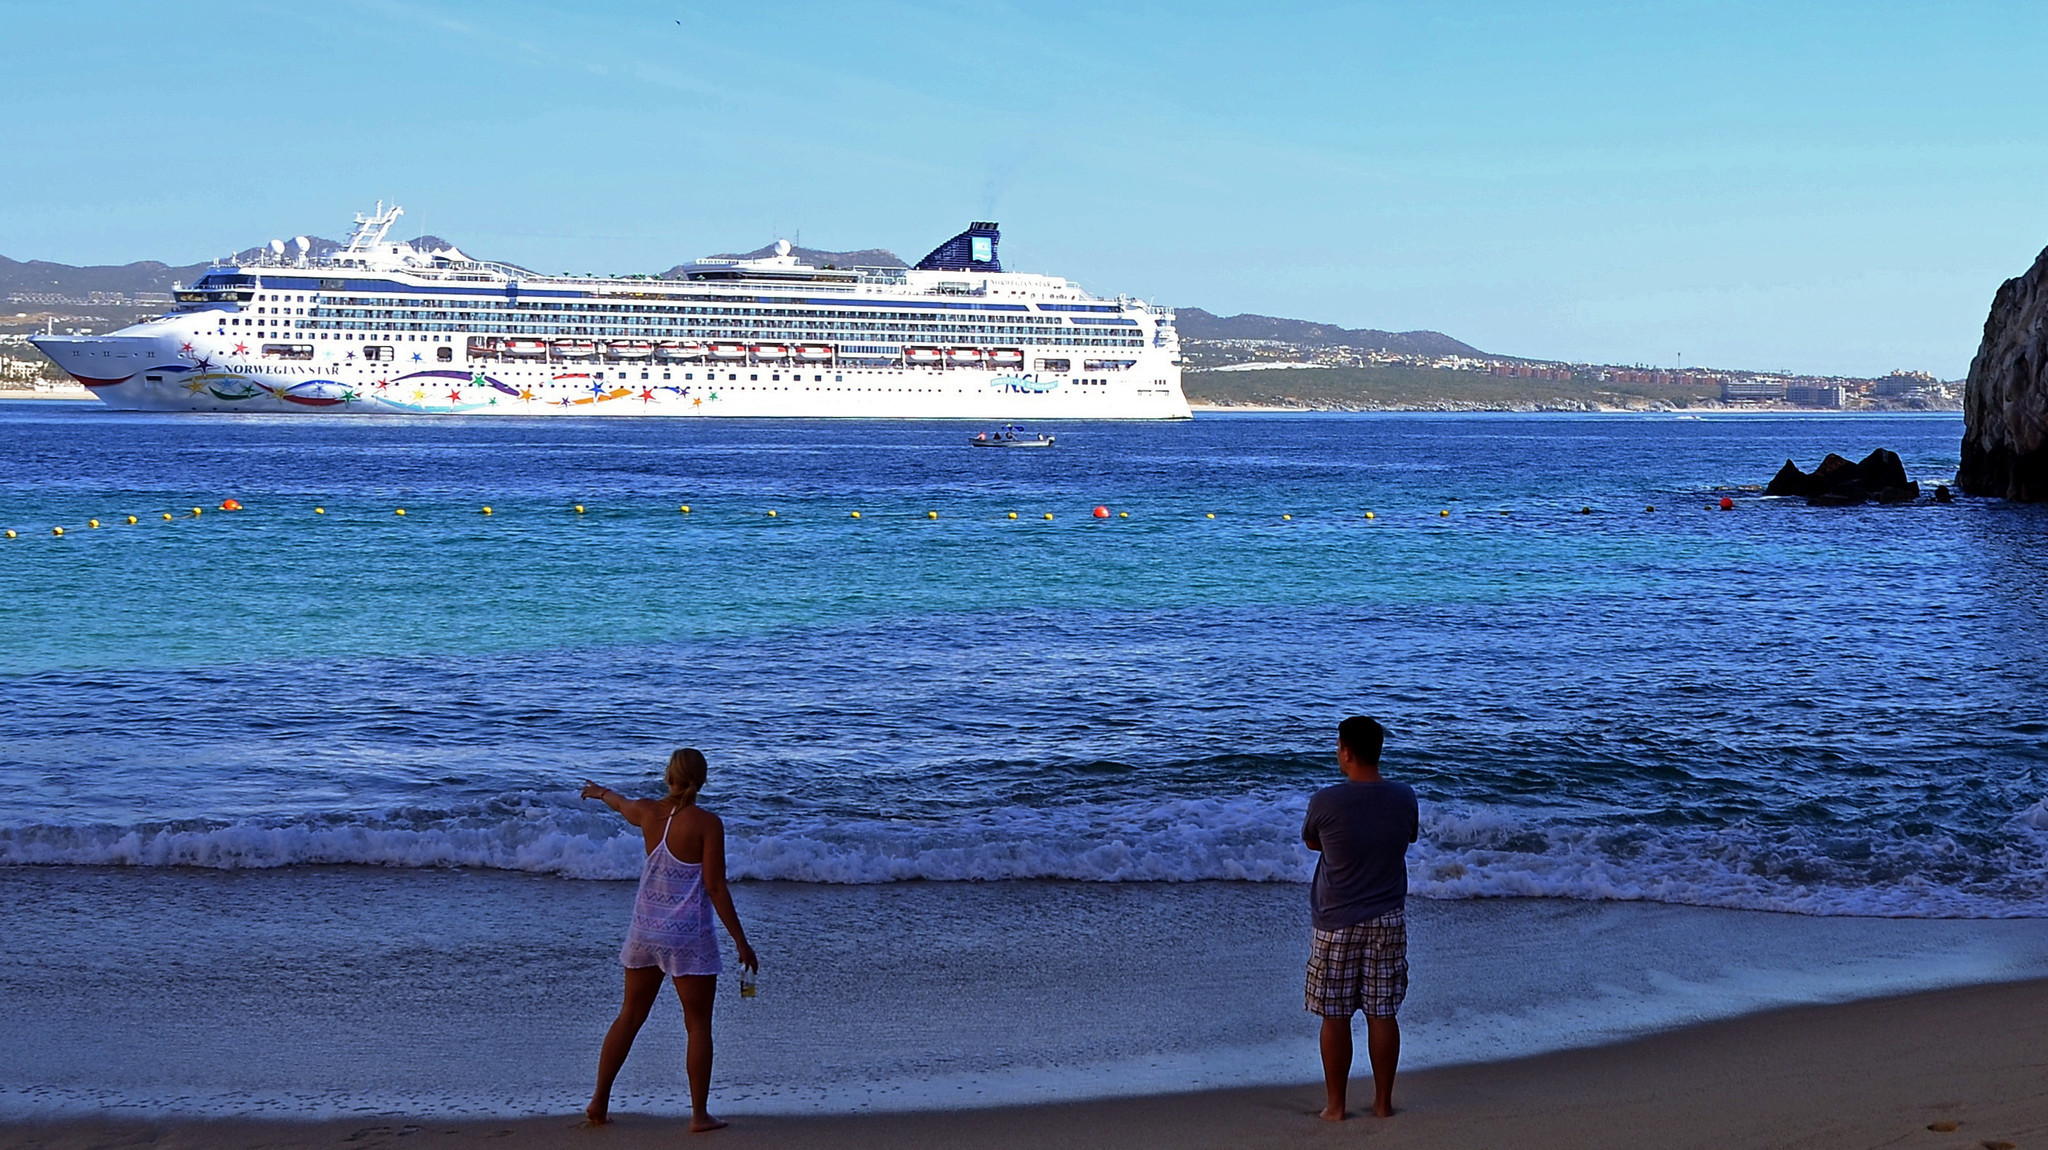 Spring break plans are smooth sailing on a cruise